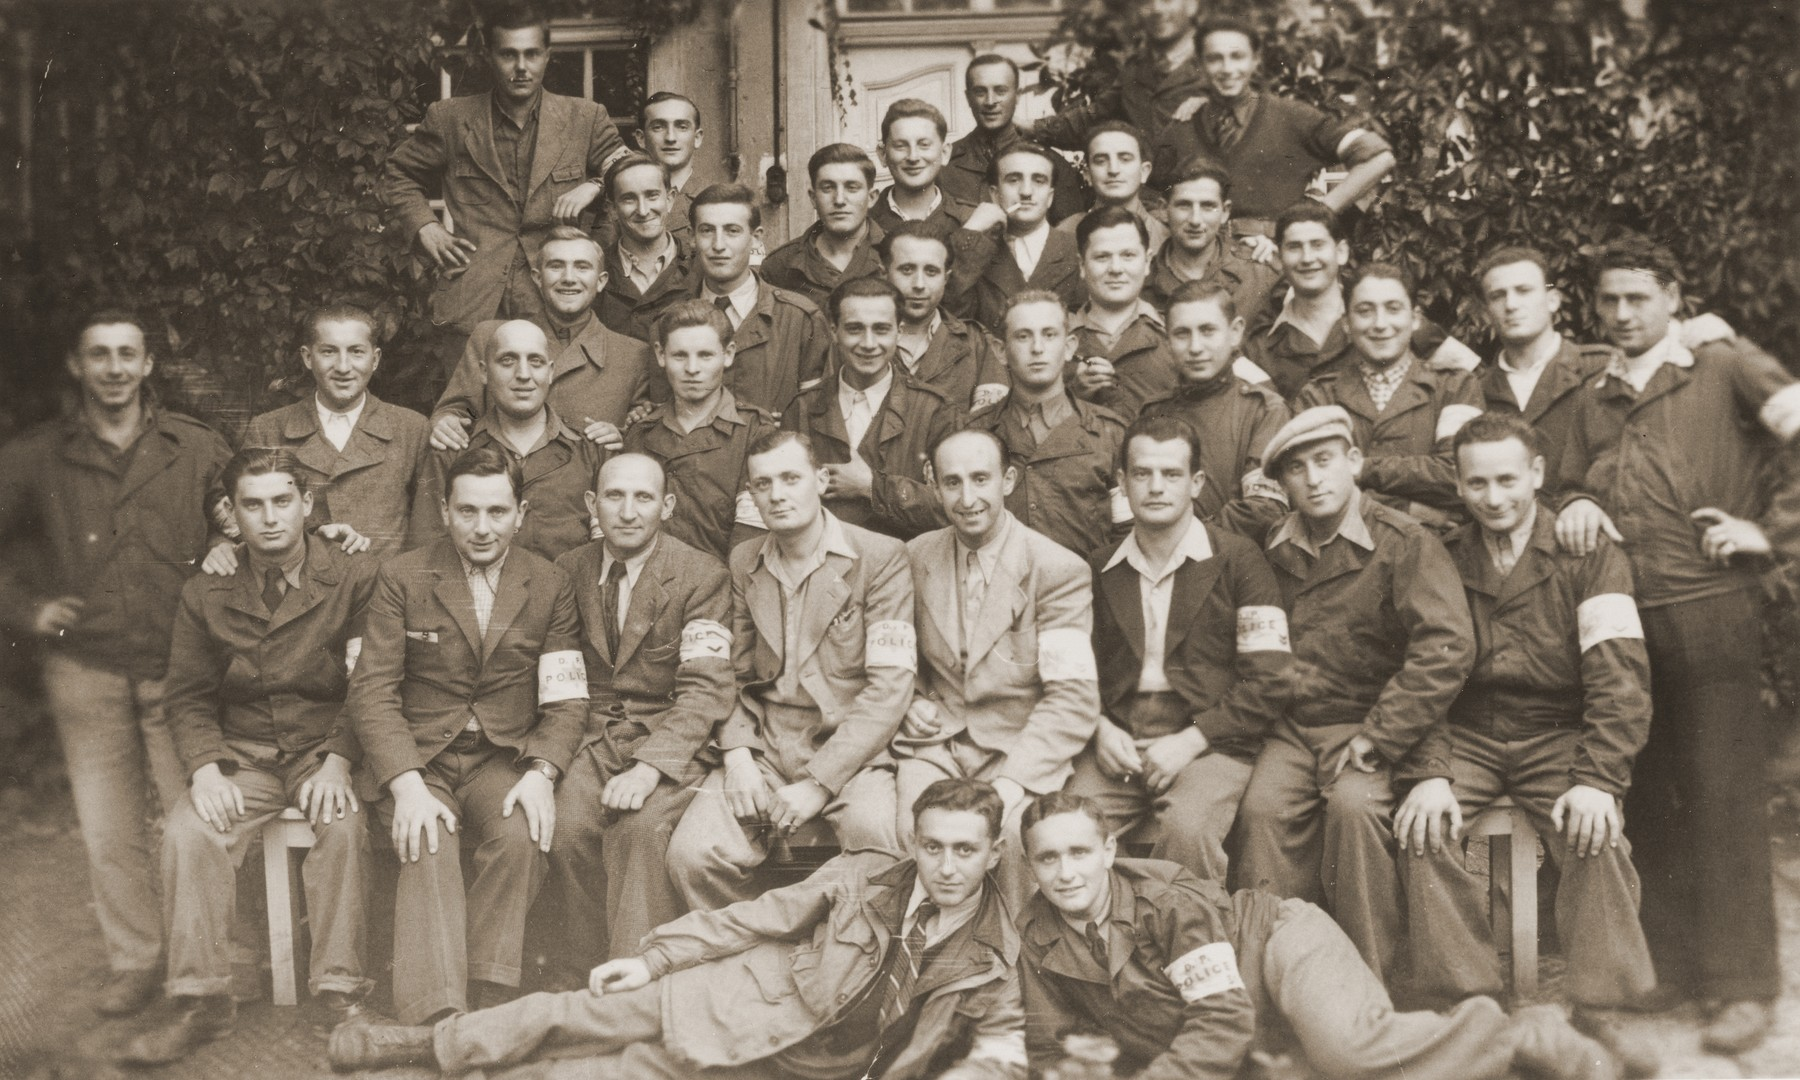 Group portrait of Jewish police in the Landsberg displaced persons camp.  Among those pictured is Moshe (Morris) Barkowski, in the third row (first row standing), fifth from the left.